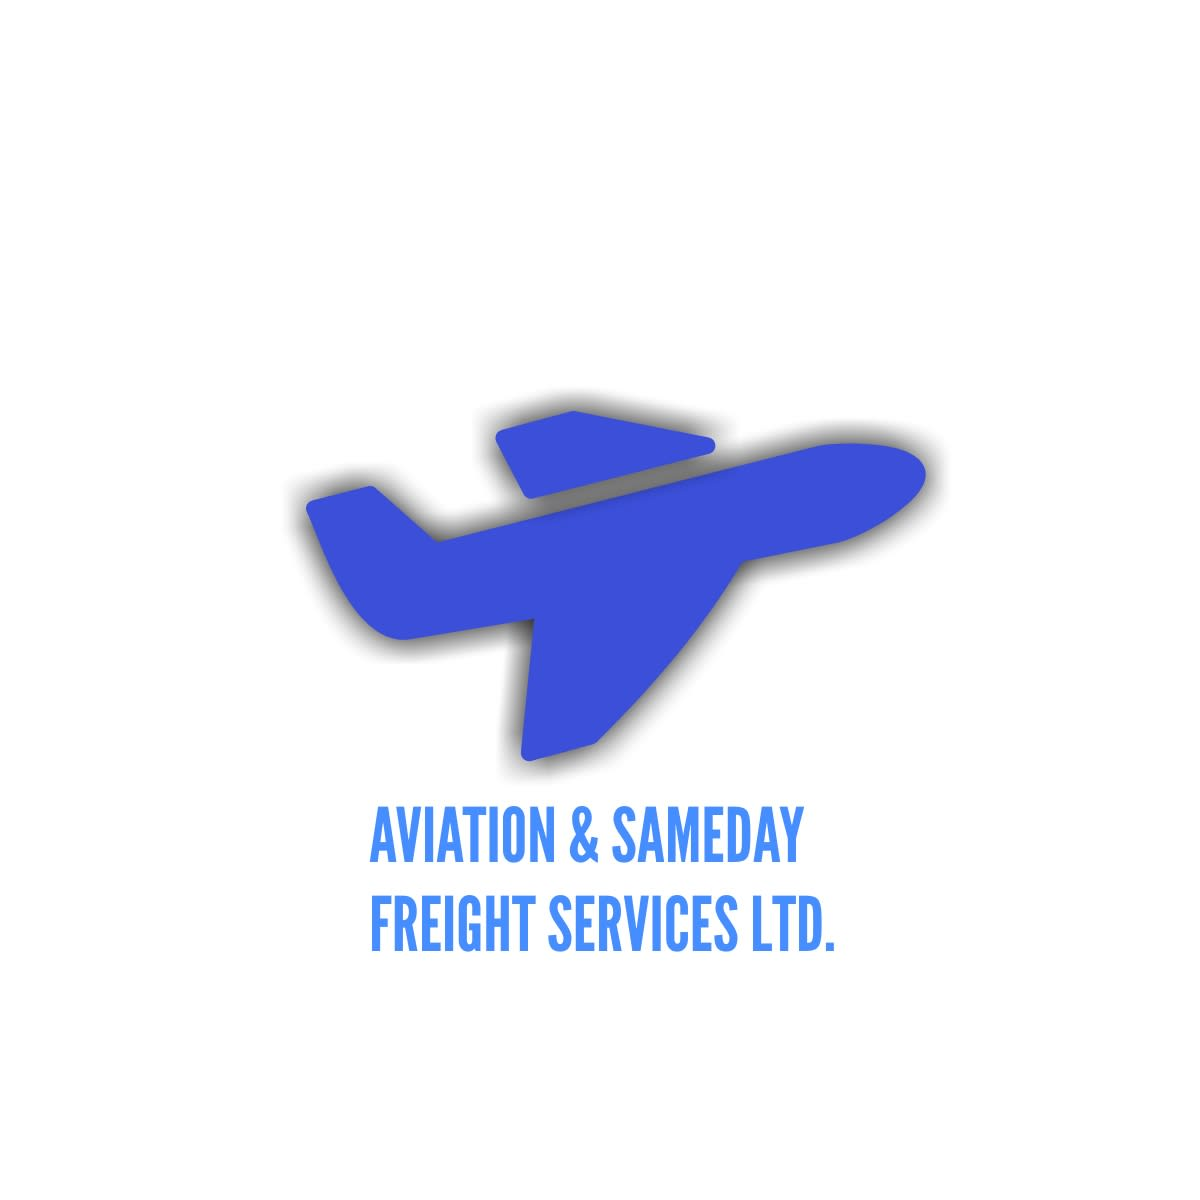 Aviation & Sameday Freight Services